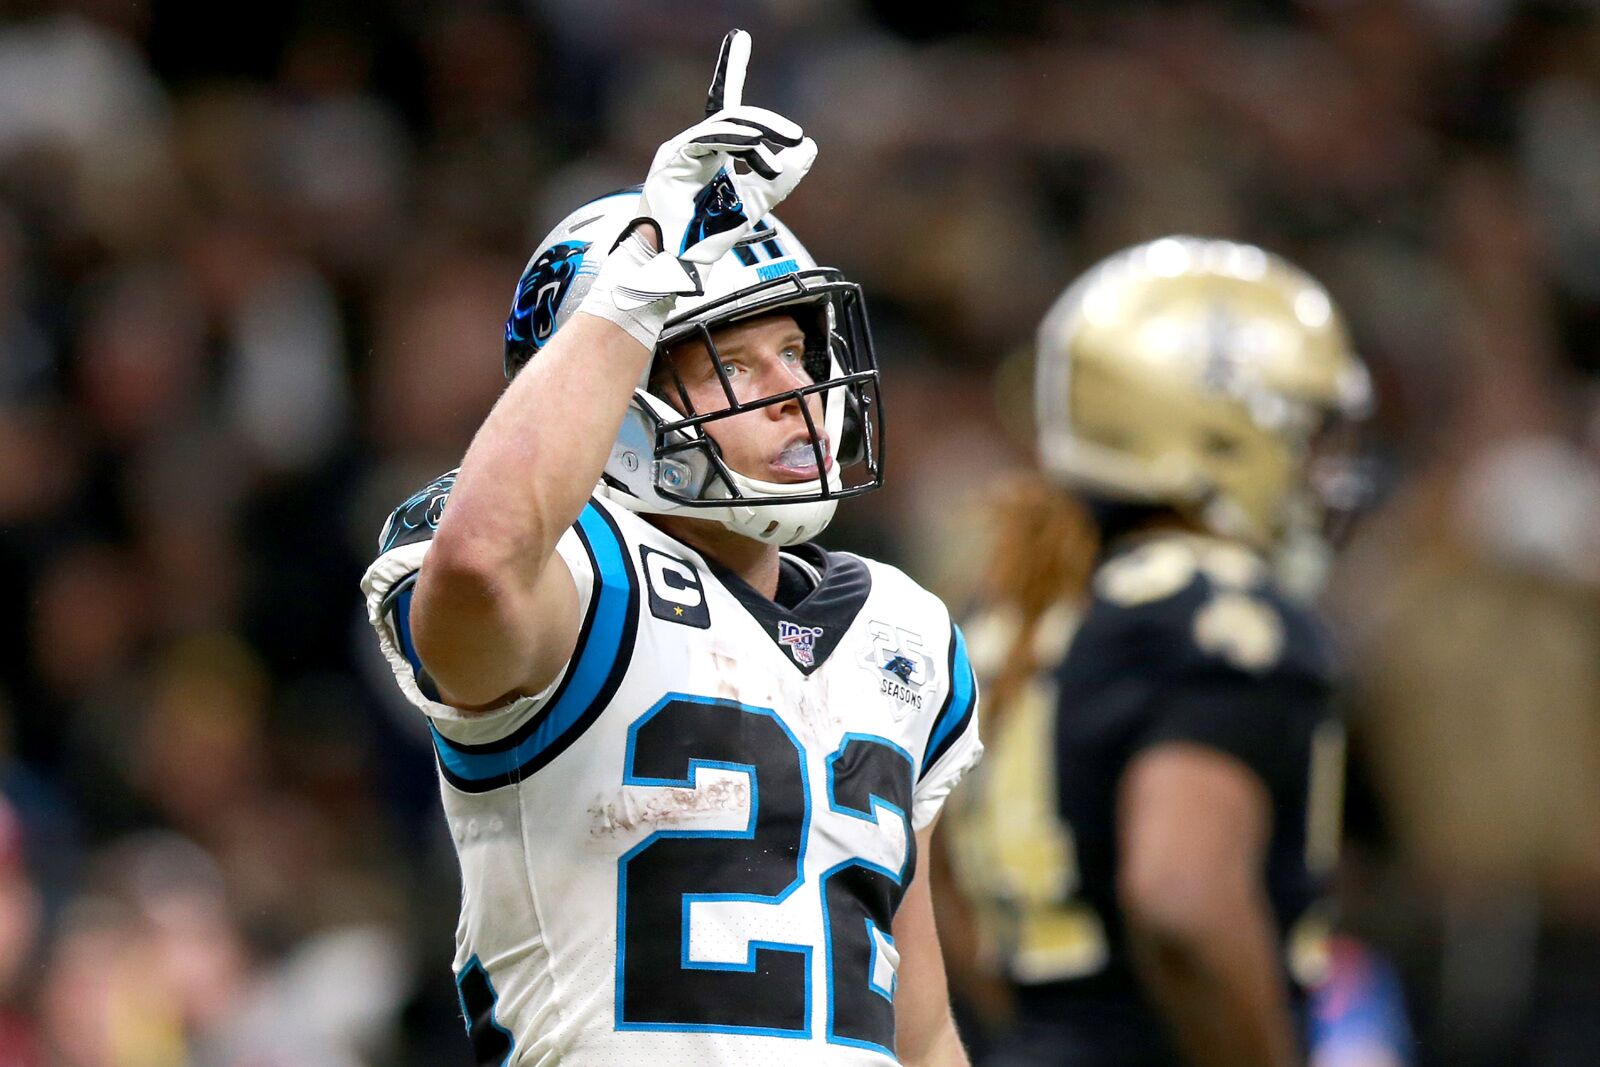 Carolina Panthers: Christian McCaffrey to wear special cleats for Sunday